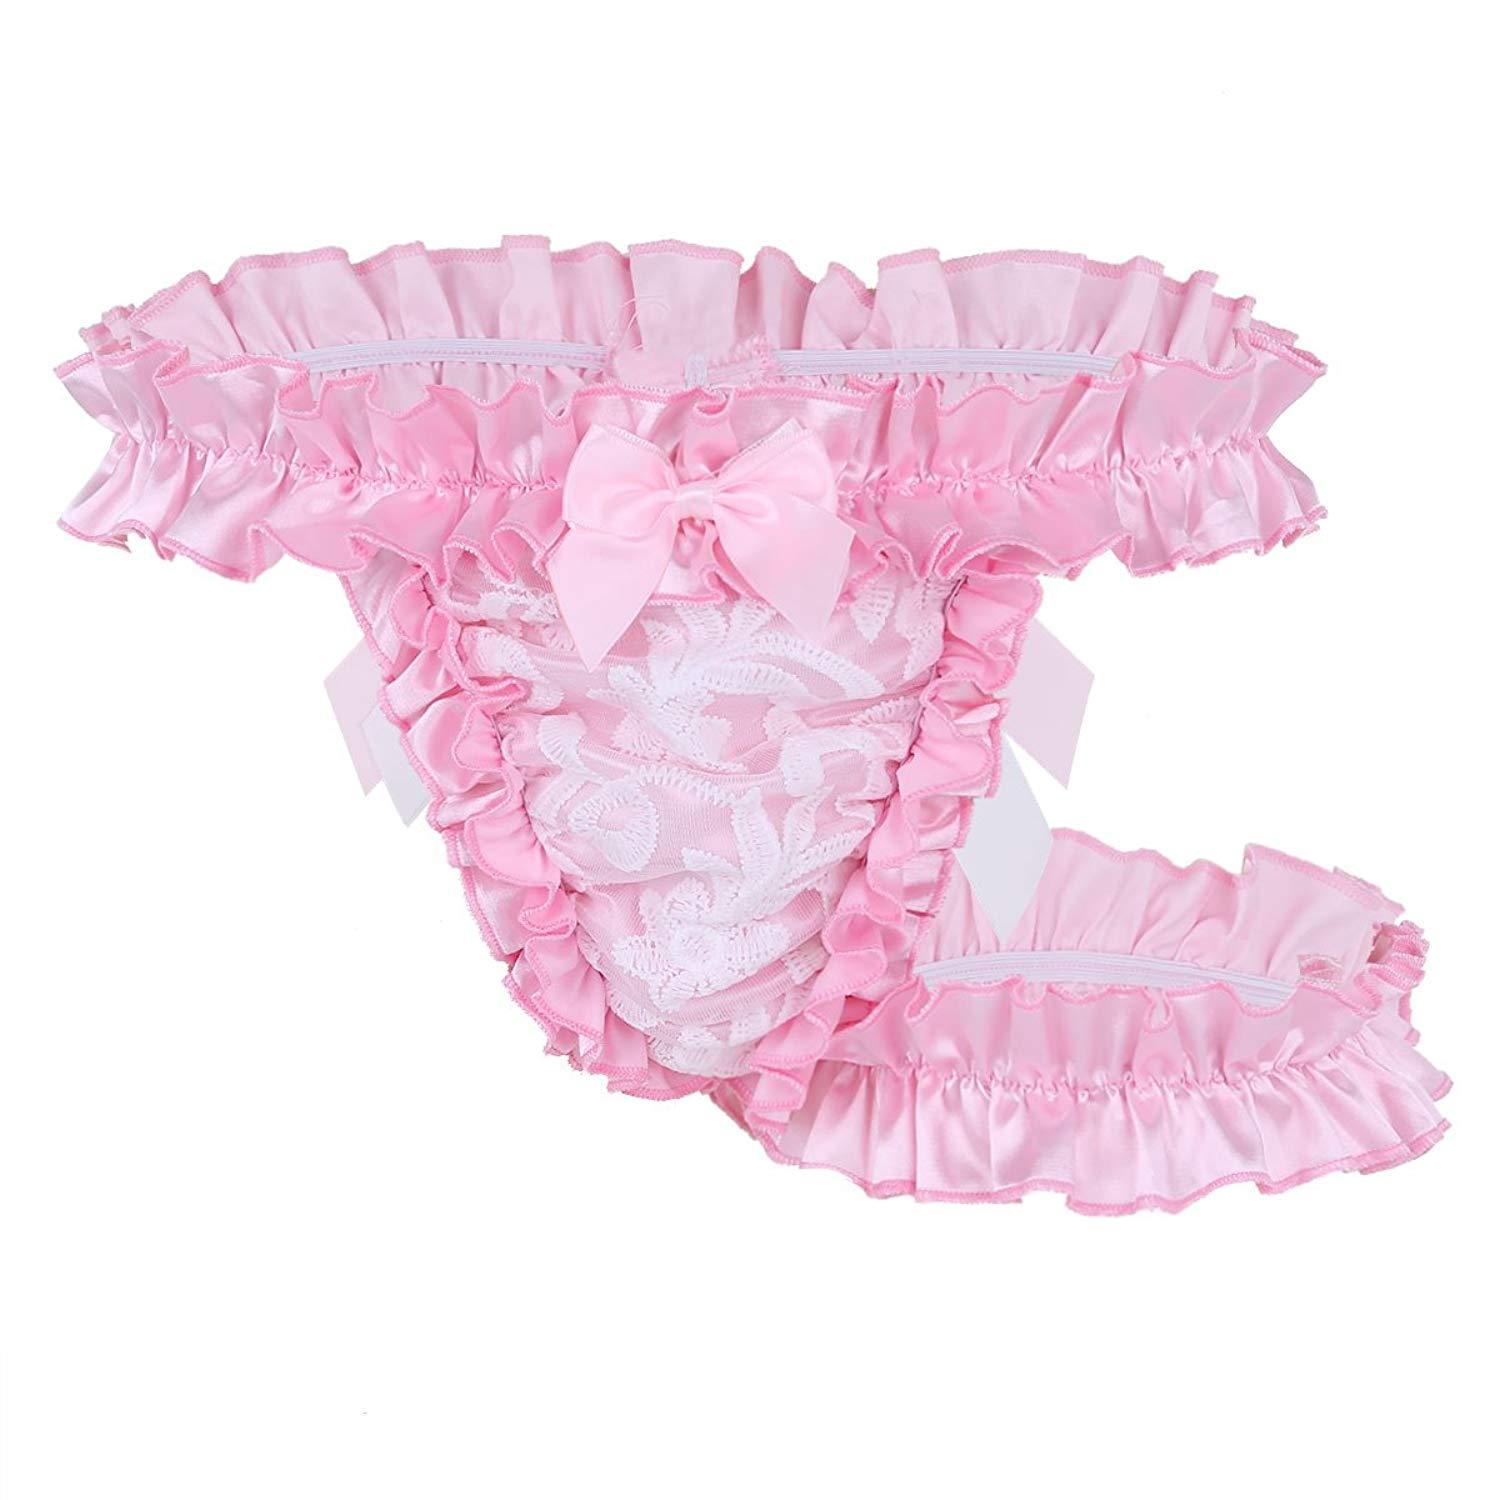 aa7c2cc88d25 Get Quotations · MSemis Men's Ruffle Frilly Satin Lace Sissy Maid Briefs  Underwear Tutu Knickers Crossdres Panties